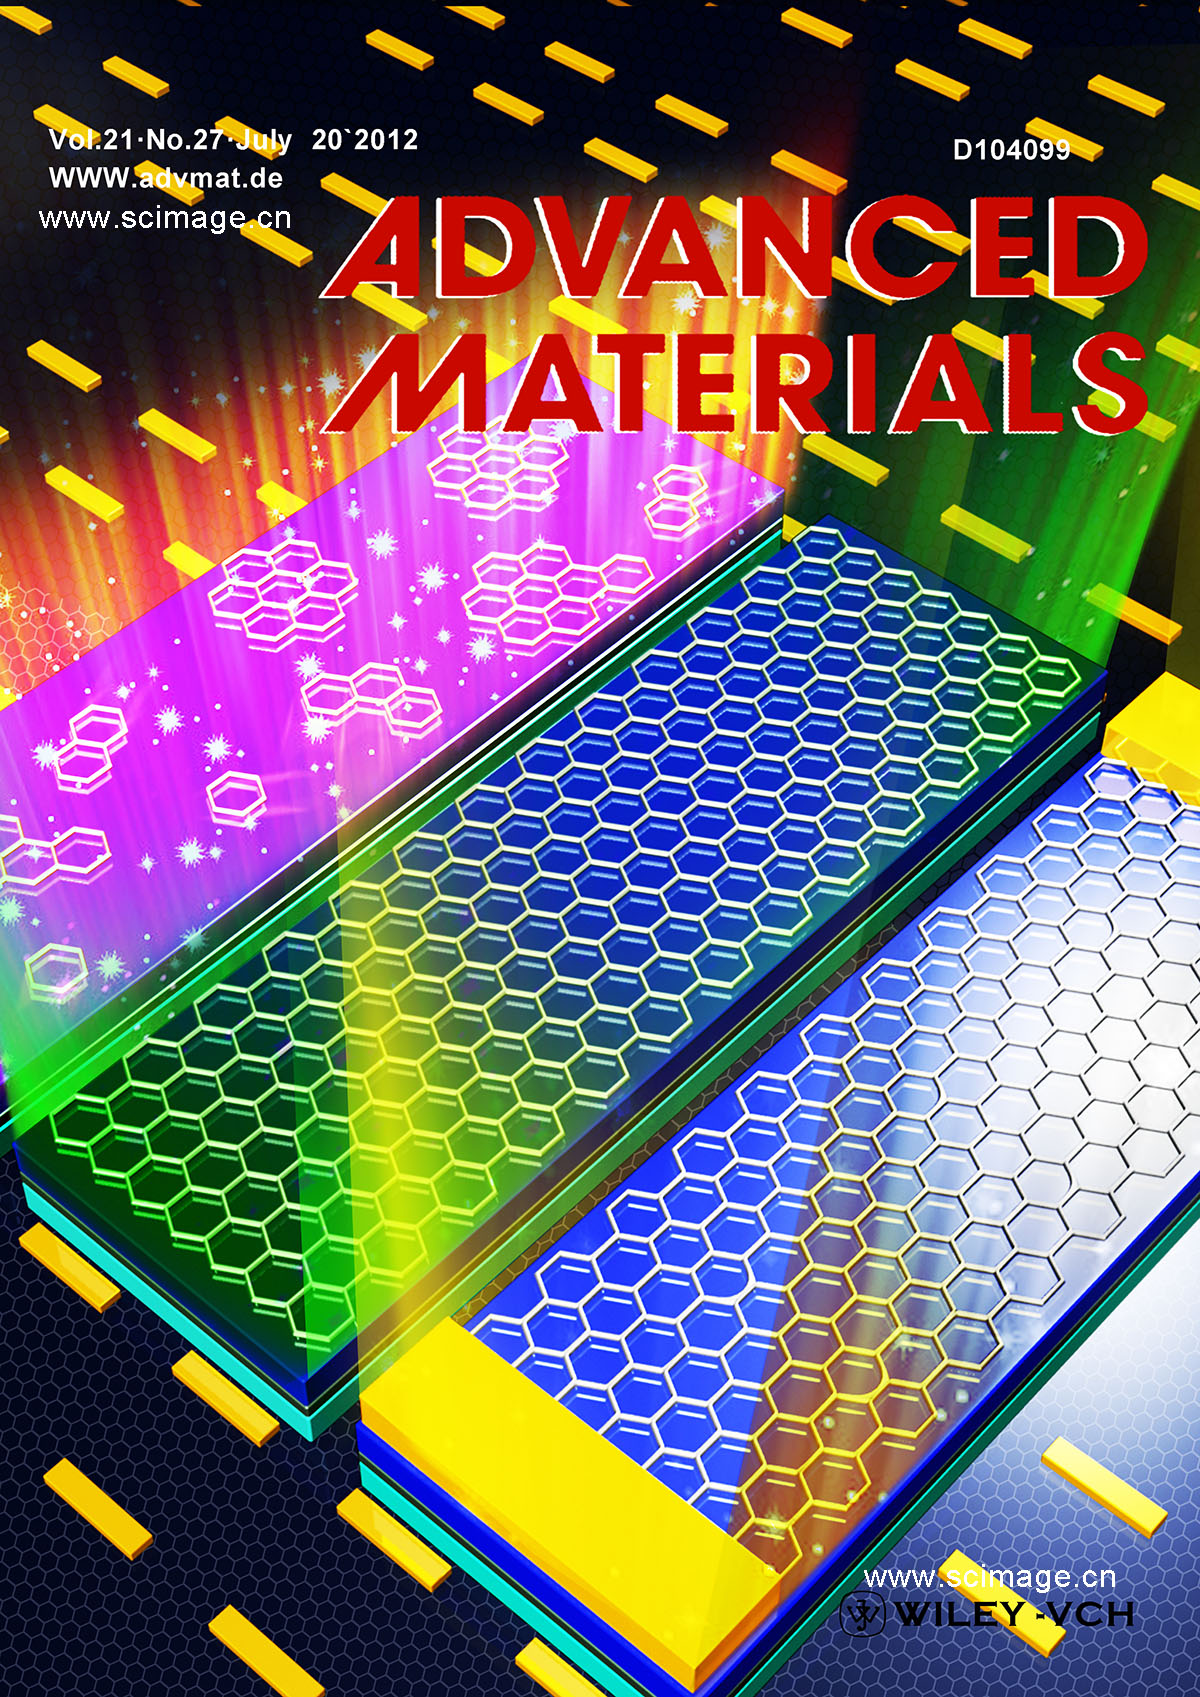 Graphene: Two-Stage Metal-Catalyst-Free Growth of High-Quality Polycrystalline Graphene Films on Silicon Nitride Substrates (Adv. Mater. 7/2013)